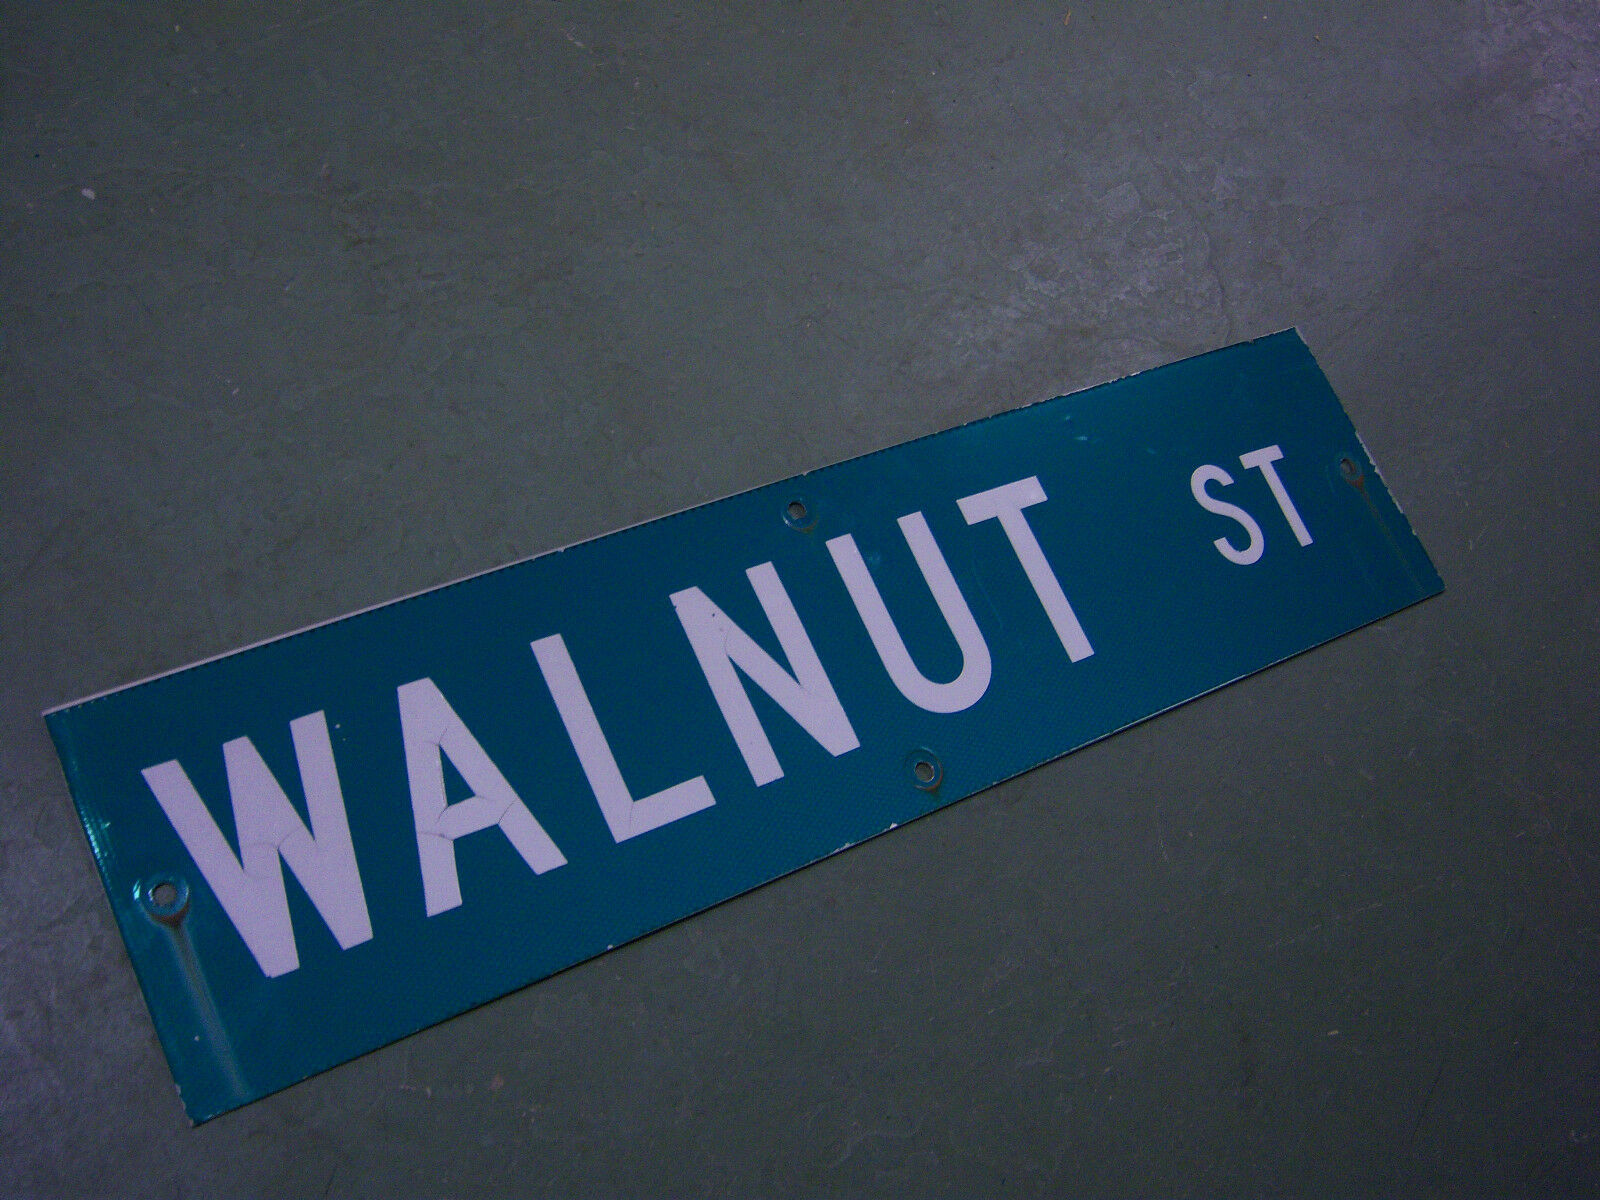 "Vintage ORIGINAL WALNUT ST STREET SIGN 36"" X 9"" WHITE LETTERING ON GREEN"